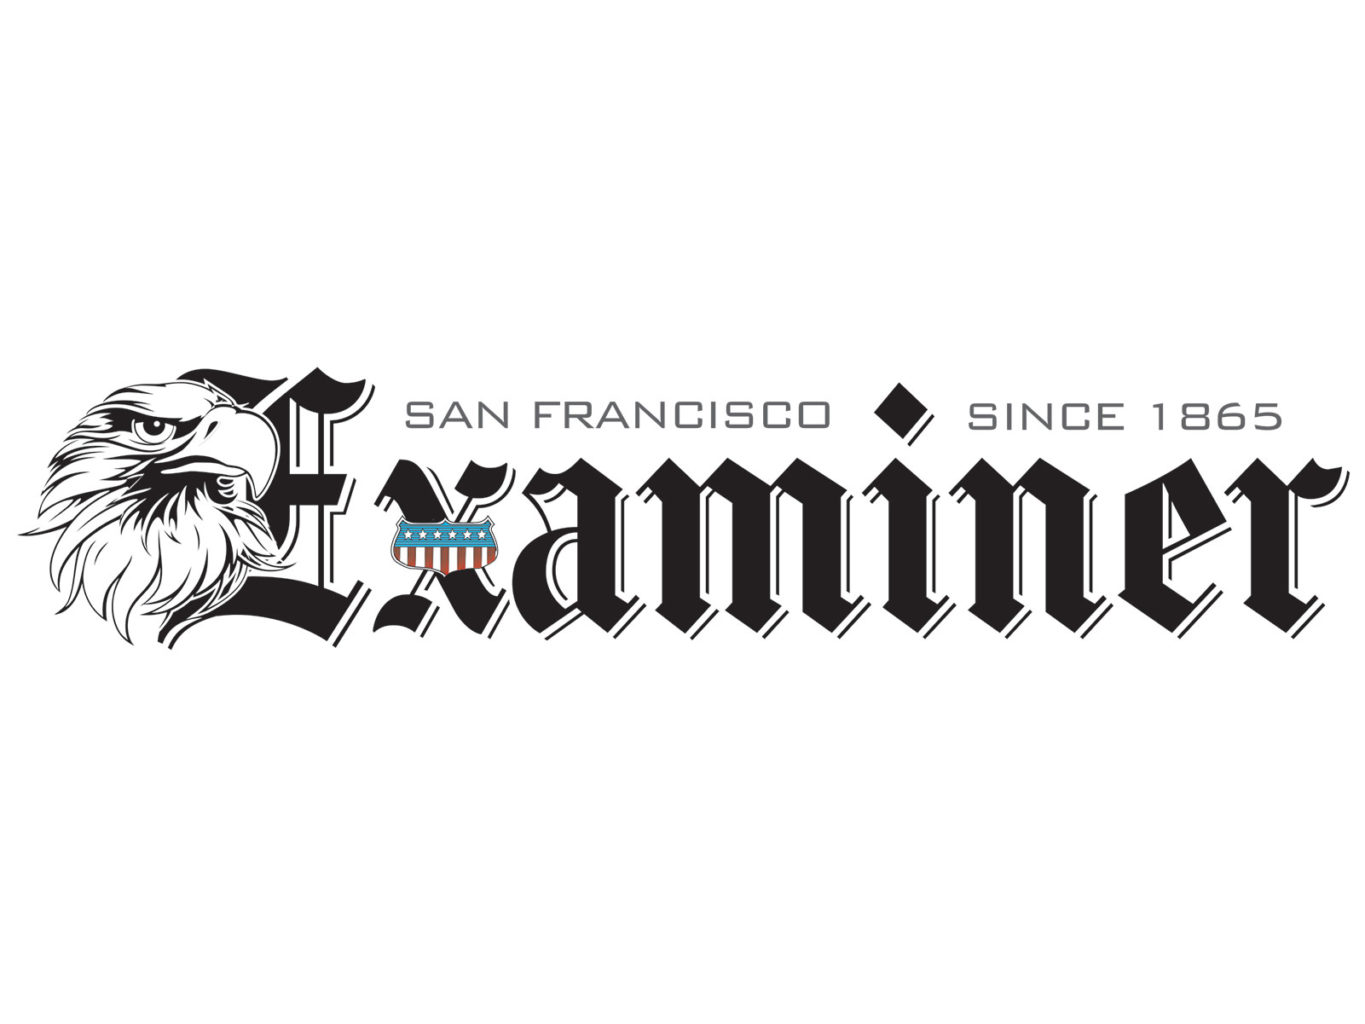 SF Examiner, Museum of Craft and Design